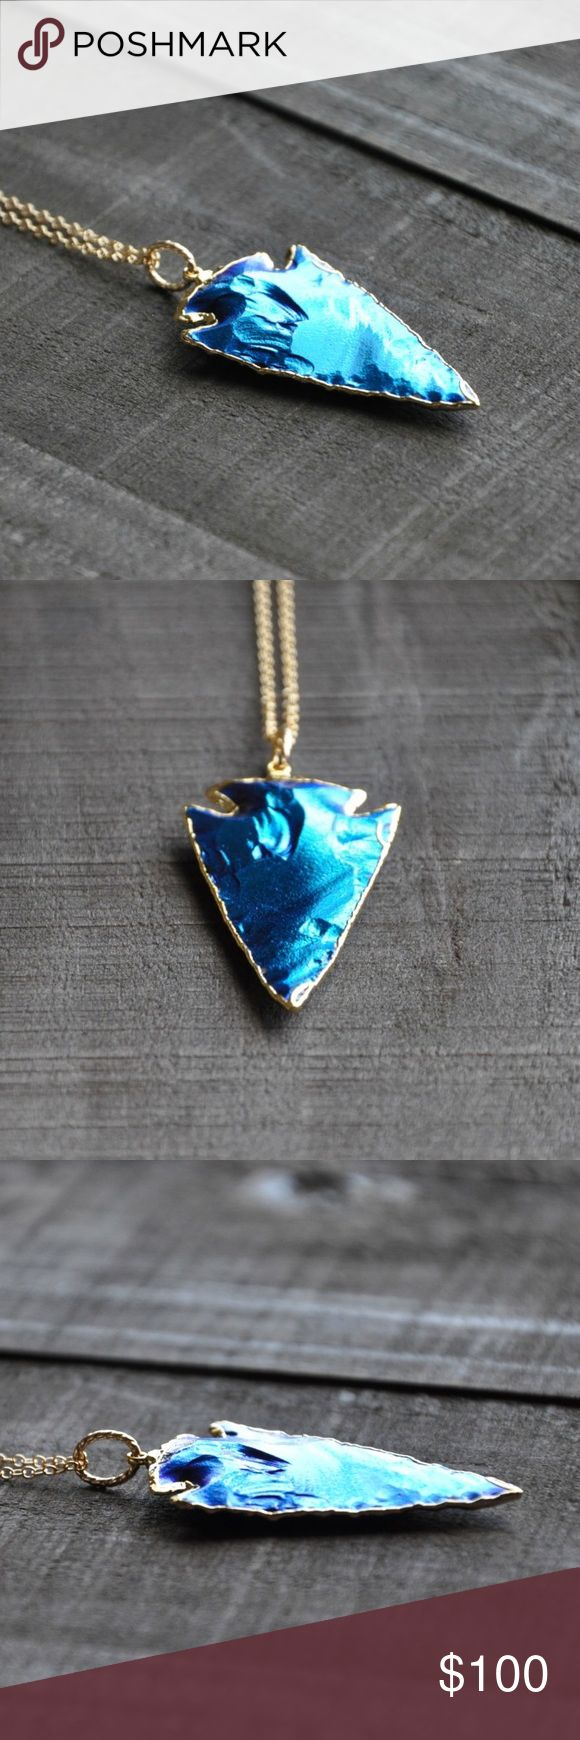 """Mystic Blue and Gold Arrowhead Necklace Large Mystic Blue Titanium Arrowhead with 24k Electroplated Gold Edging on a 24"""" Inch Gold Fill Chain - made by me  This electric blue arrowhead will turn heads! It's gorgeous, eye catching, and really cool. Arrowheads are treated with titanium to get this electric blue coloring.  Visit aLittleMouseShop.etsy.com for more of my handmade jewelry and 20% discount! Jewelry Necklaces"""